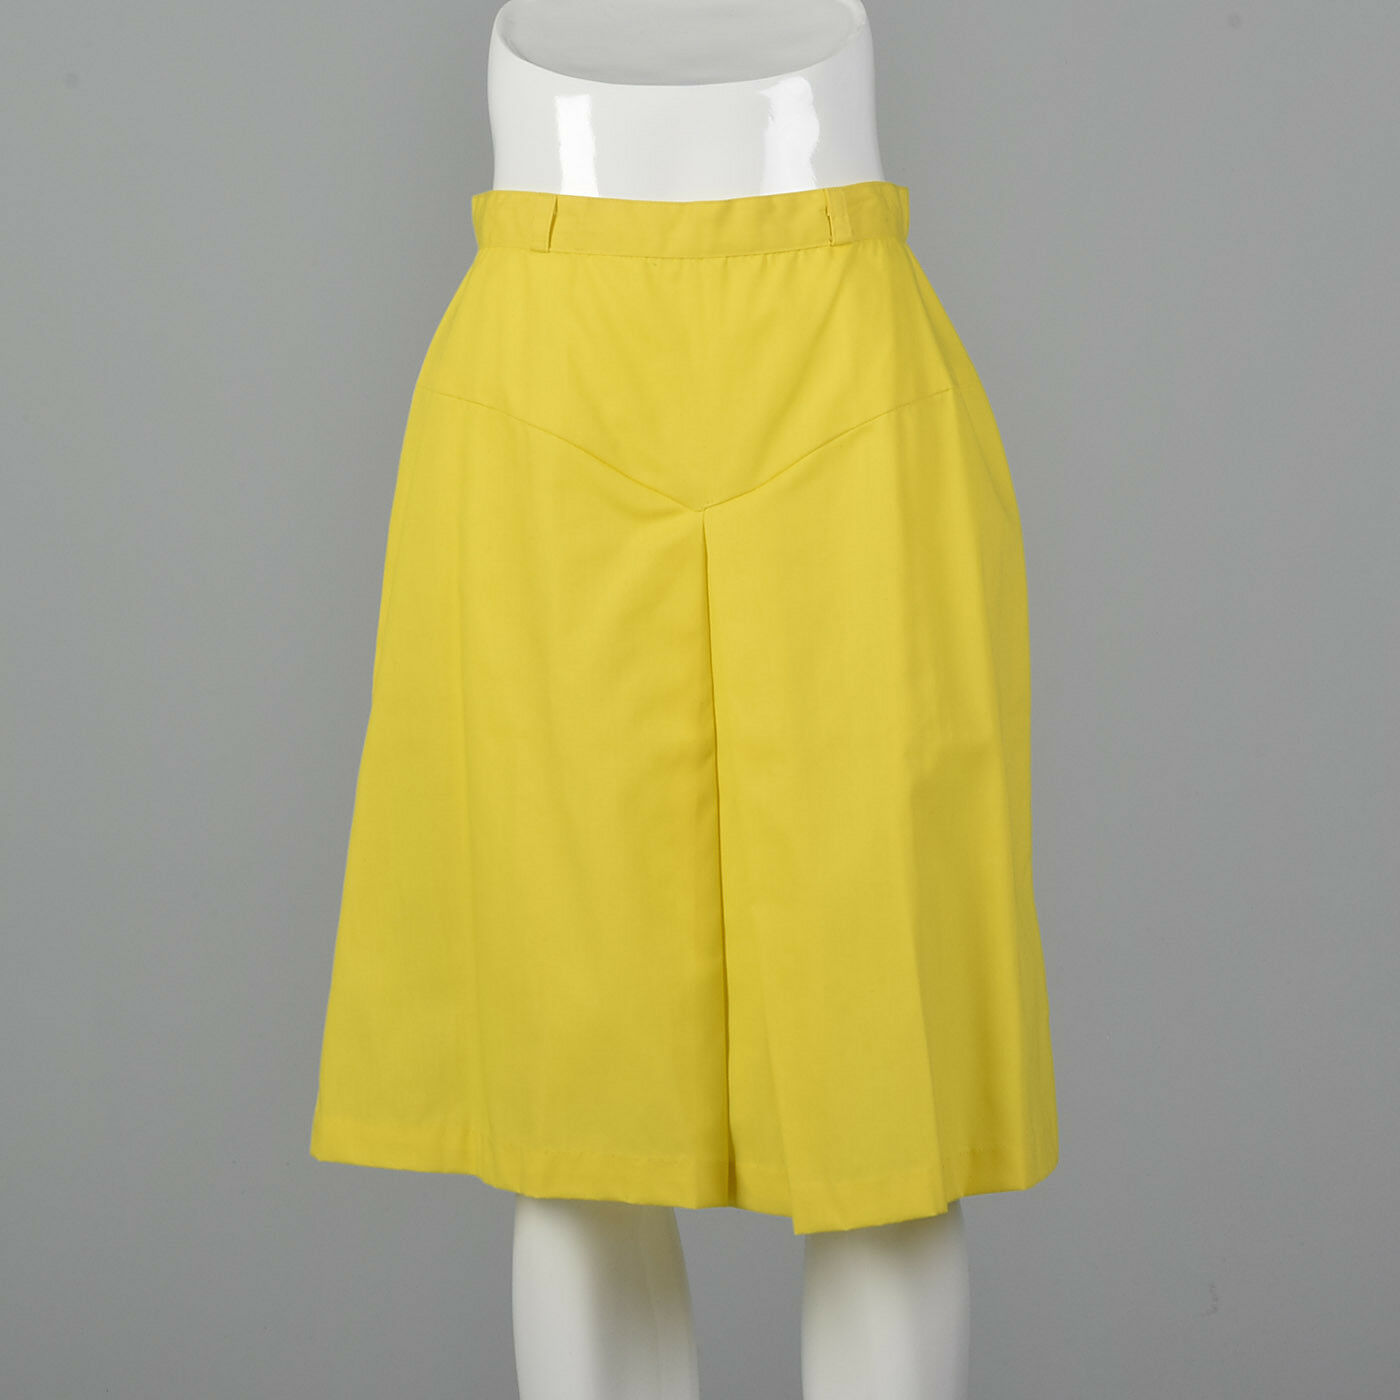 S 1960s Bright Yellow Mod Mini Skirt Cotton Separates Spring Summer Outfit 60s